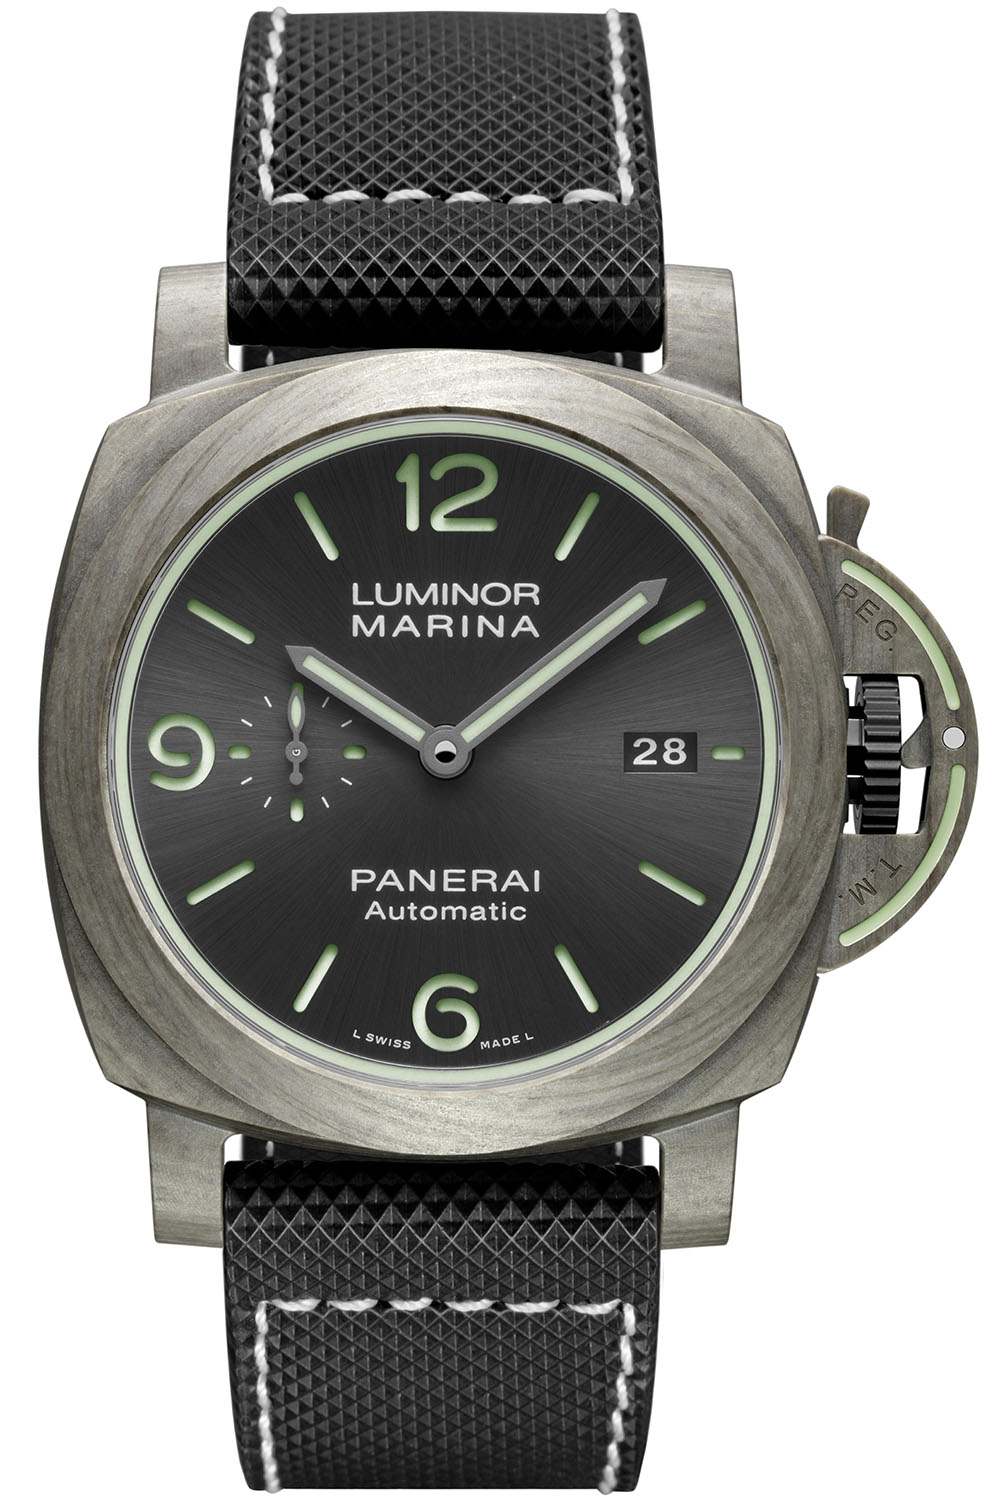 2020 Panerai Luminor Marina PAM119 - 1